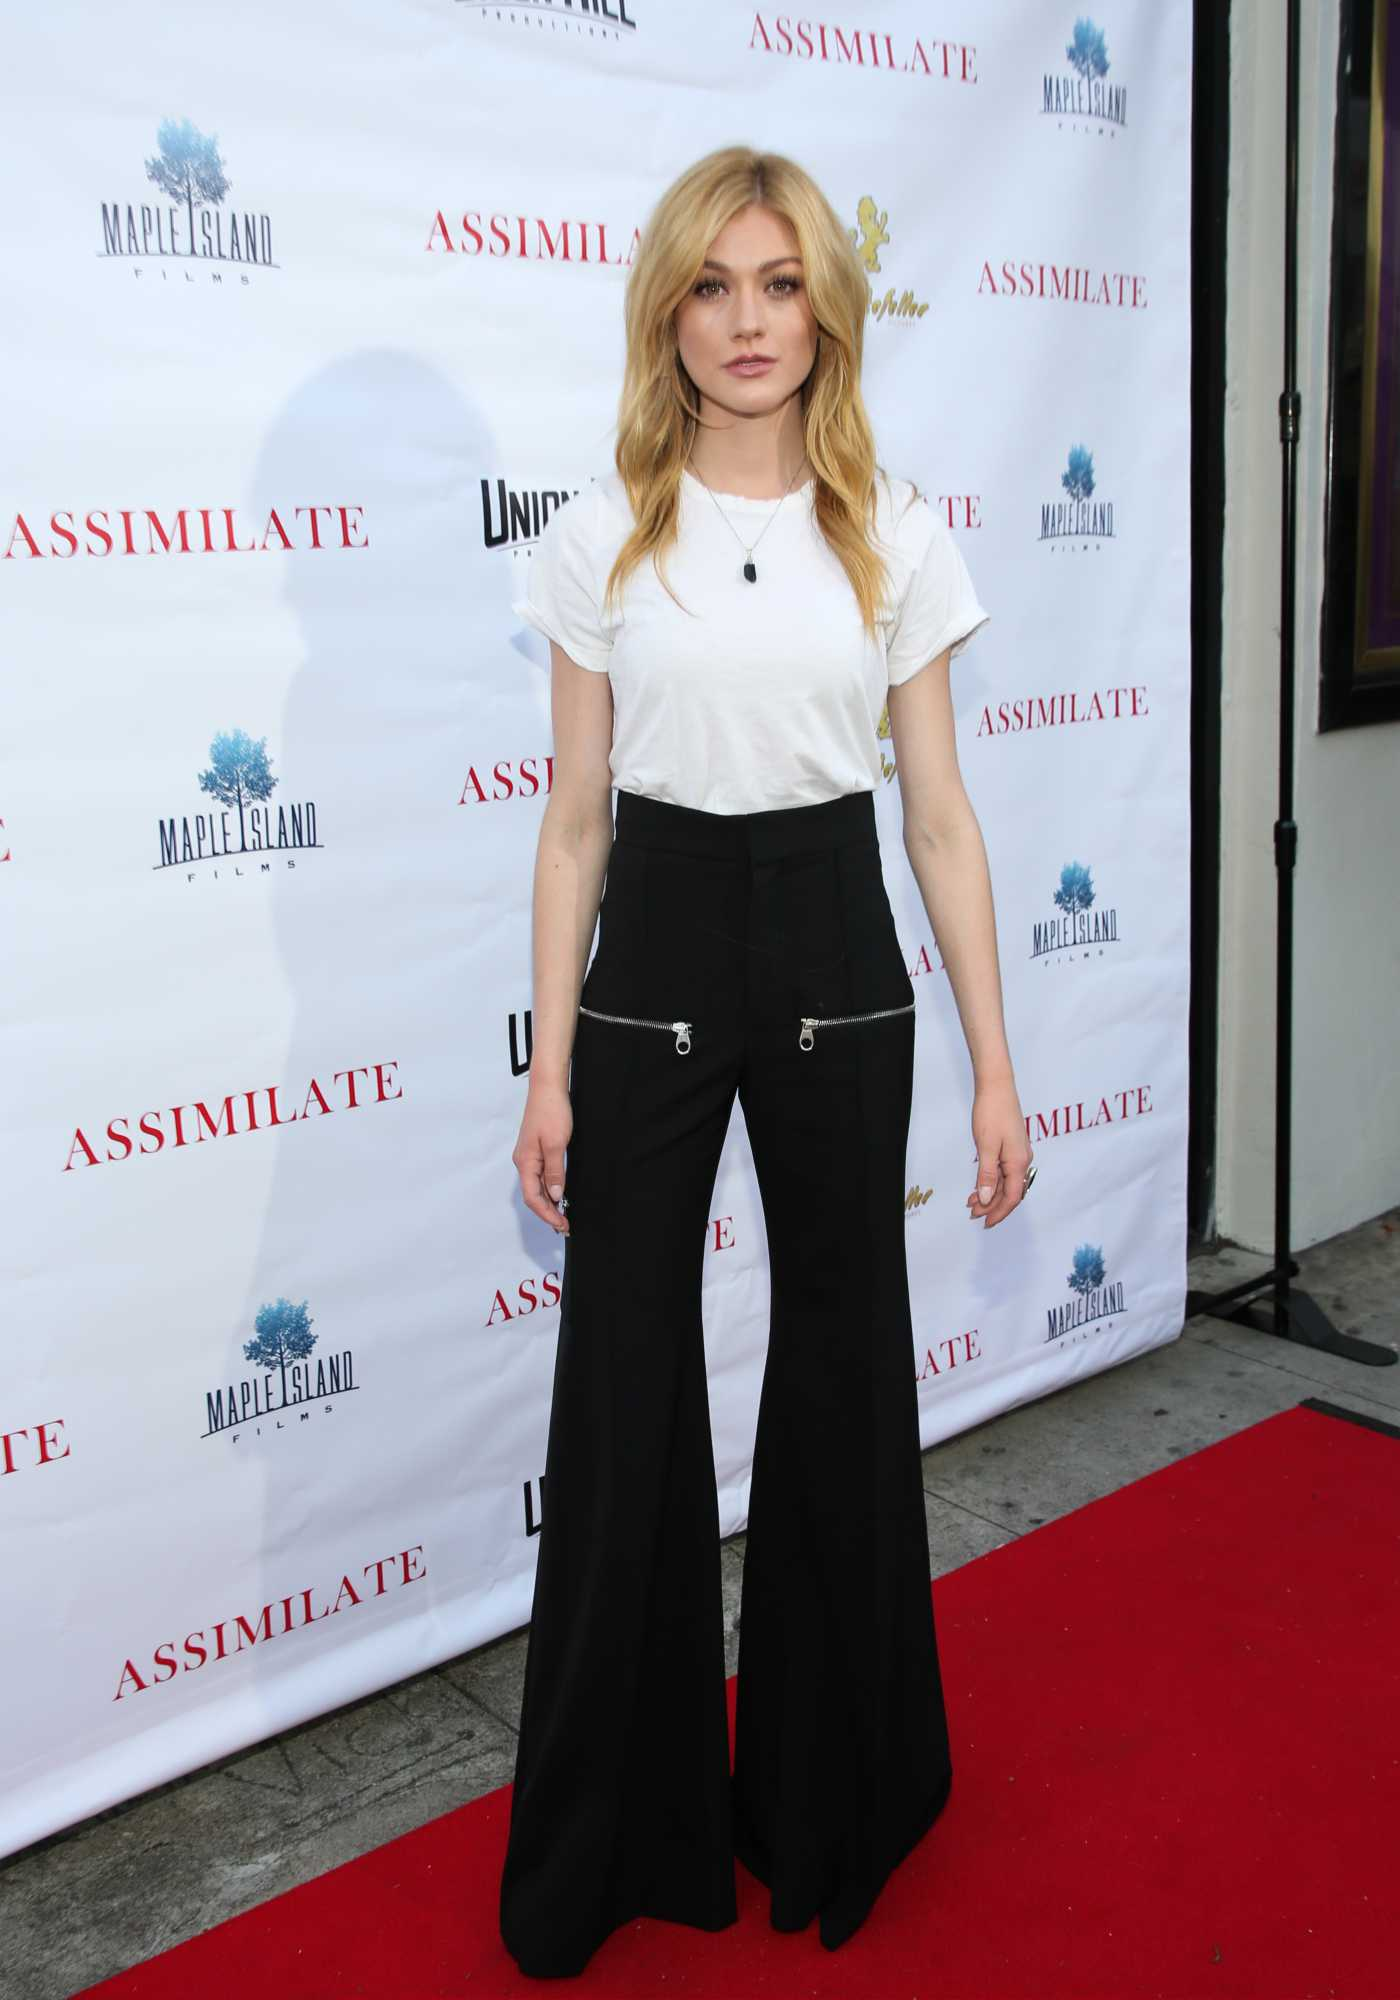 Katherine McNamara Attends the Assimilate Premiere at the Laemmle Music Hall in Beverly Hills 05/22/2019